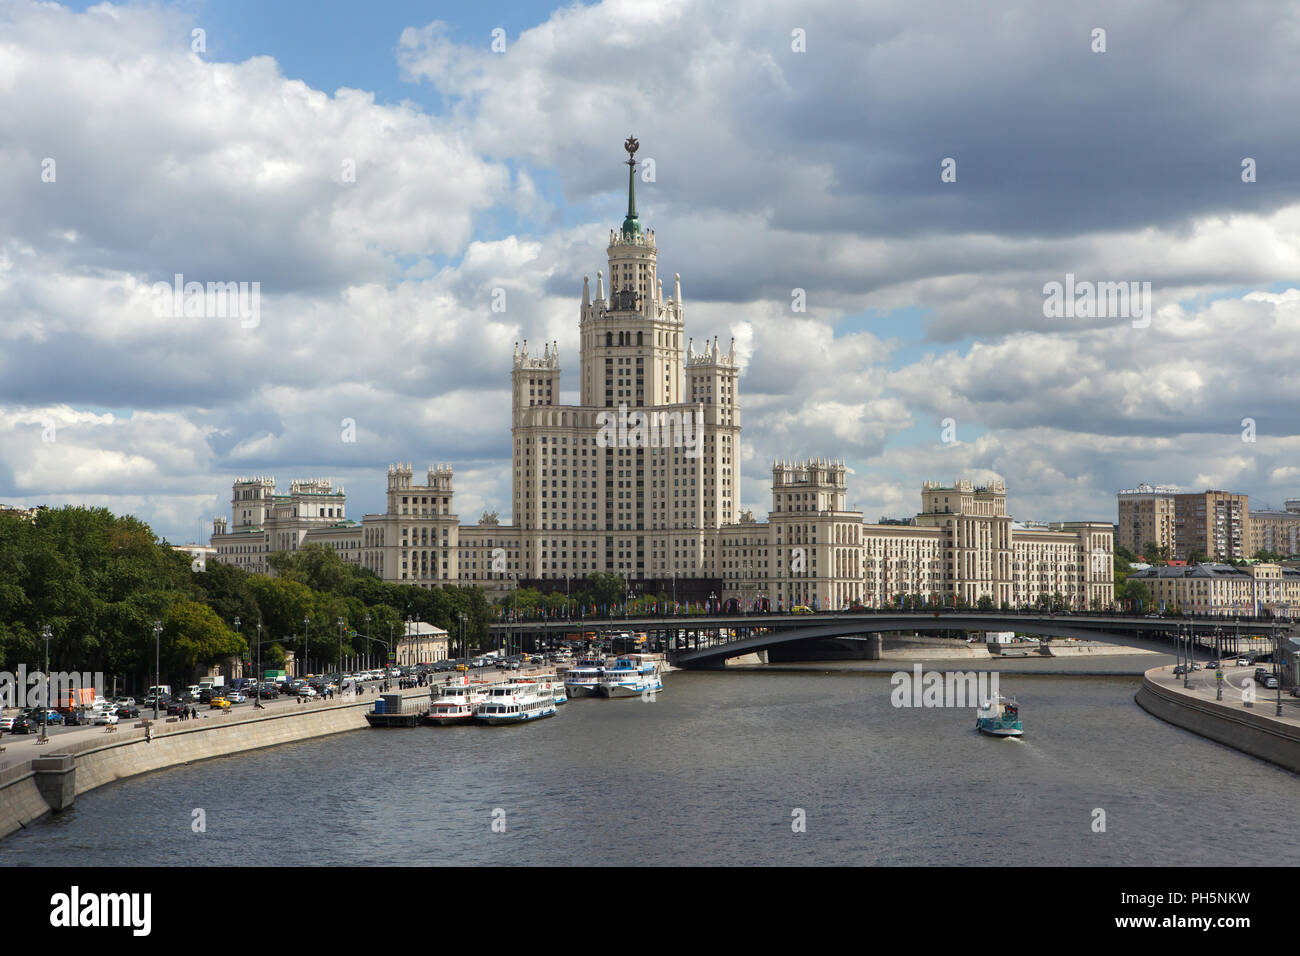 Kotelnicheskaya Embankment Building and the Moskva River pictured from the Floating Bridge in Zaryadye Park in Moscow, Russia. One of the seven Stalinist skyscrapers was designed by Soviet architects Dmitry Chechulin and Andrei Rostkovsky and built in 1947-1952. - Stock Image